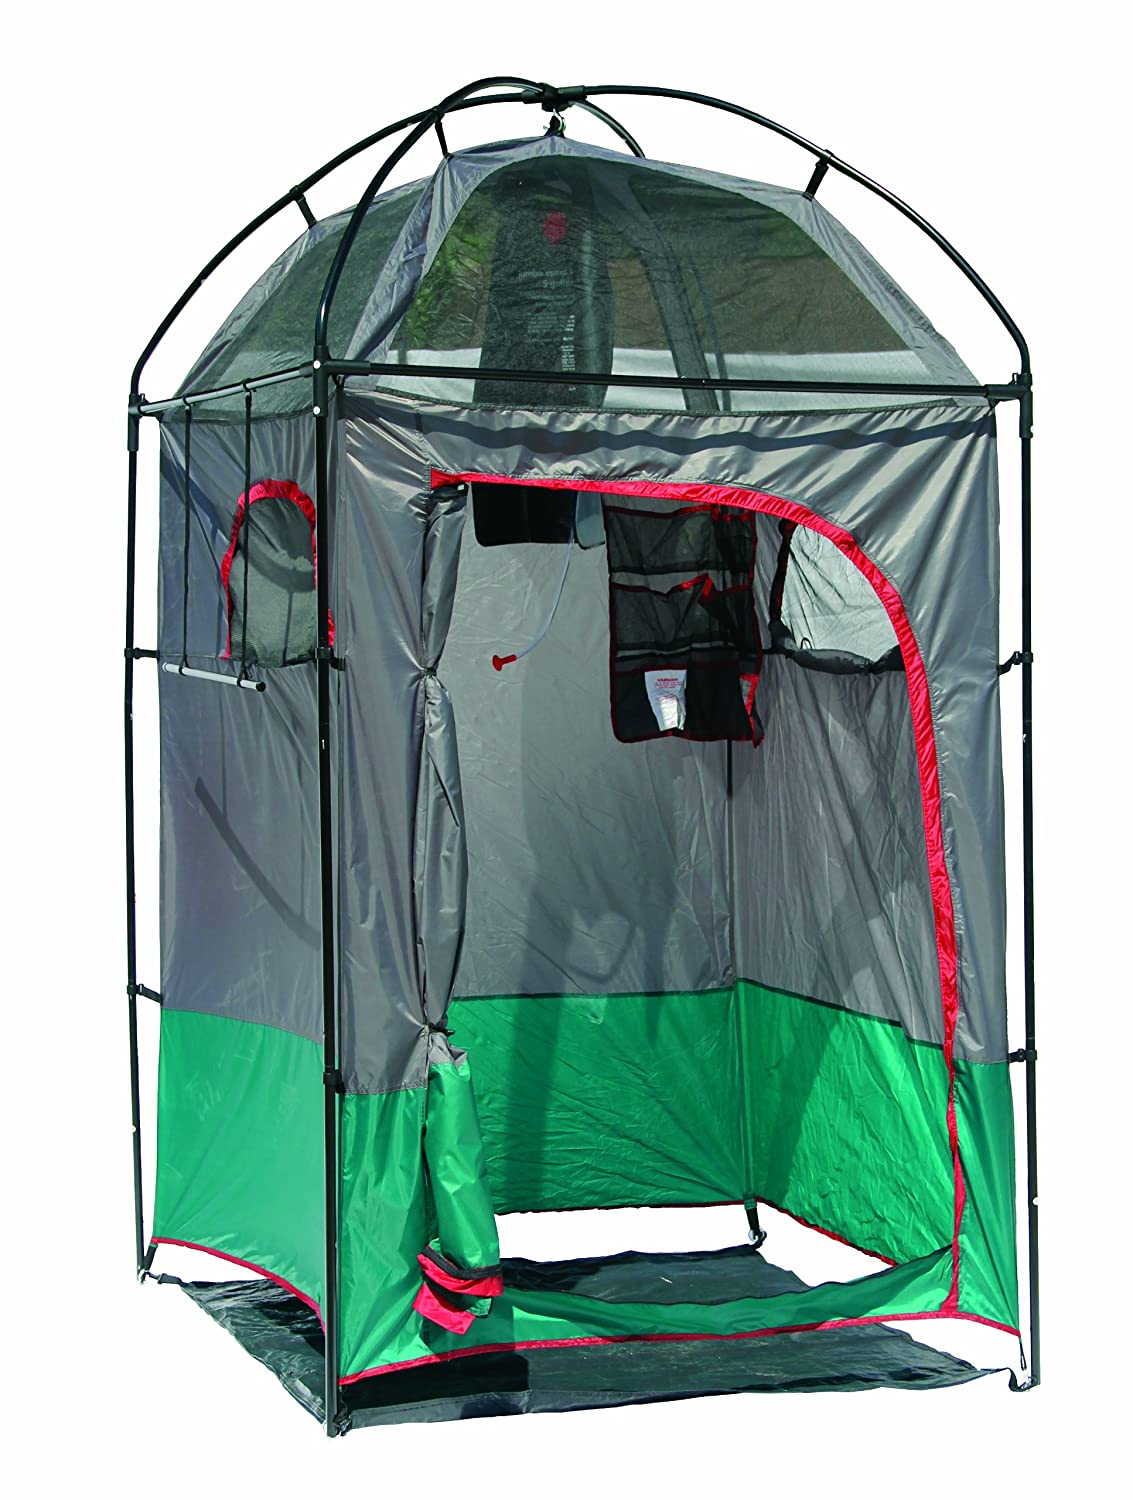 Amazon.com Texsport Instant Portable Outdoor C&ing Shower Privacy Shelter Changing Room Sports u0026 Outdoors  sc 1 st  Amazon.com : portable canopy shelter - memphite.com